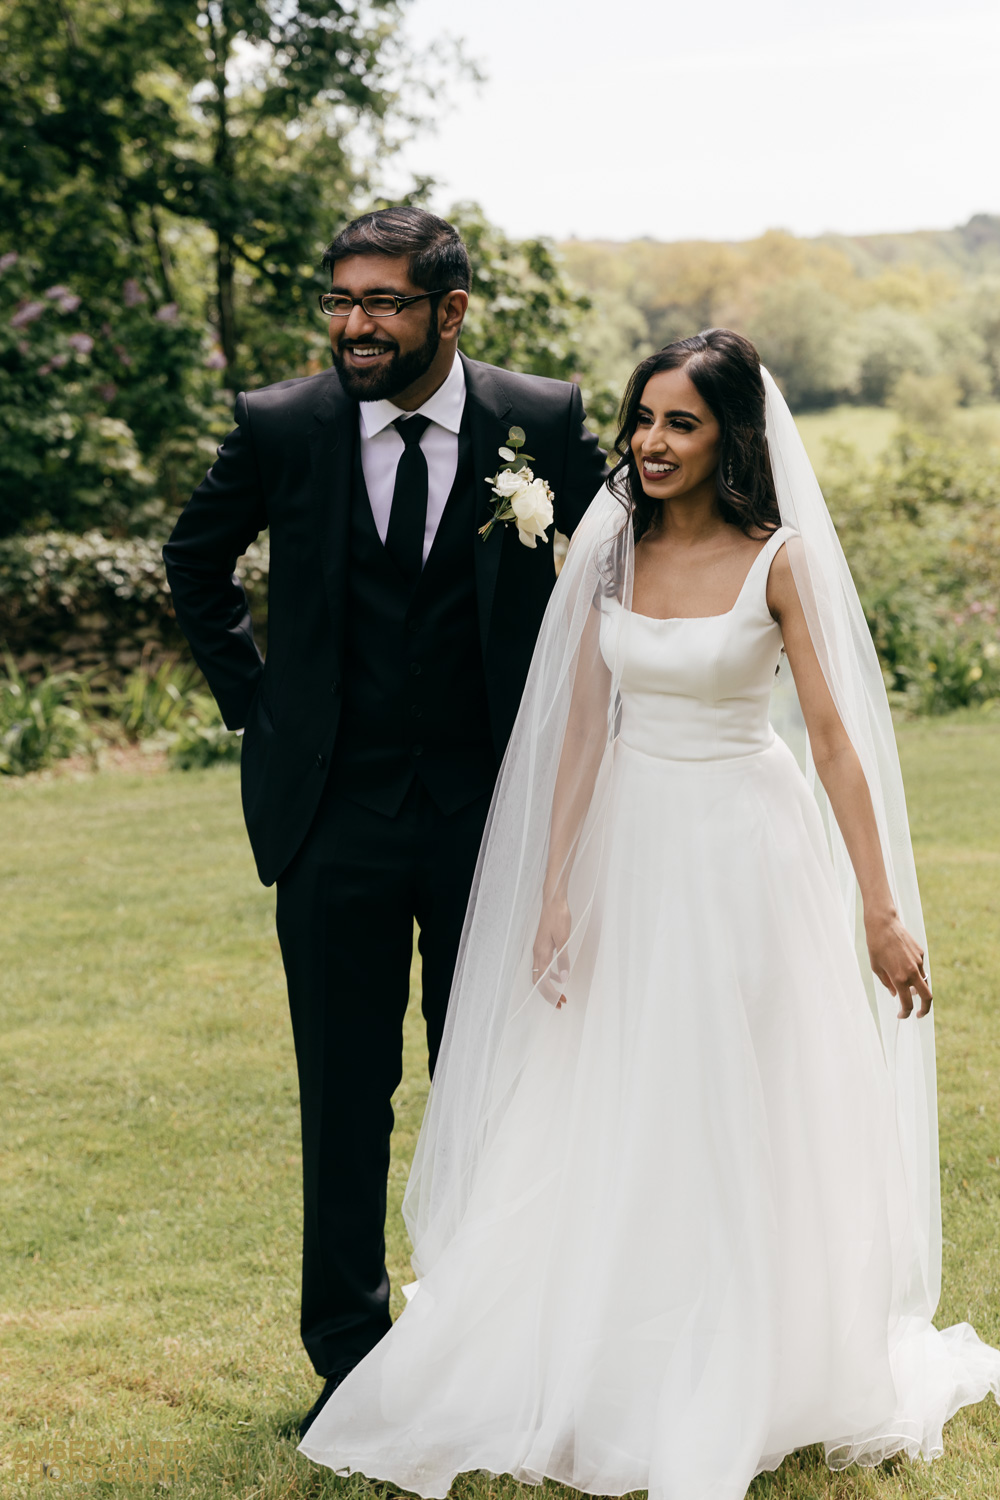 Documentary style photo of bride and groom laughing in garden